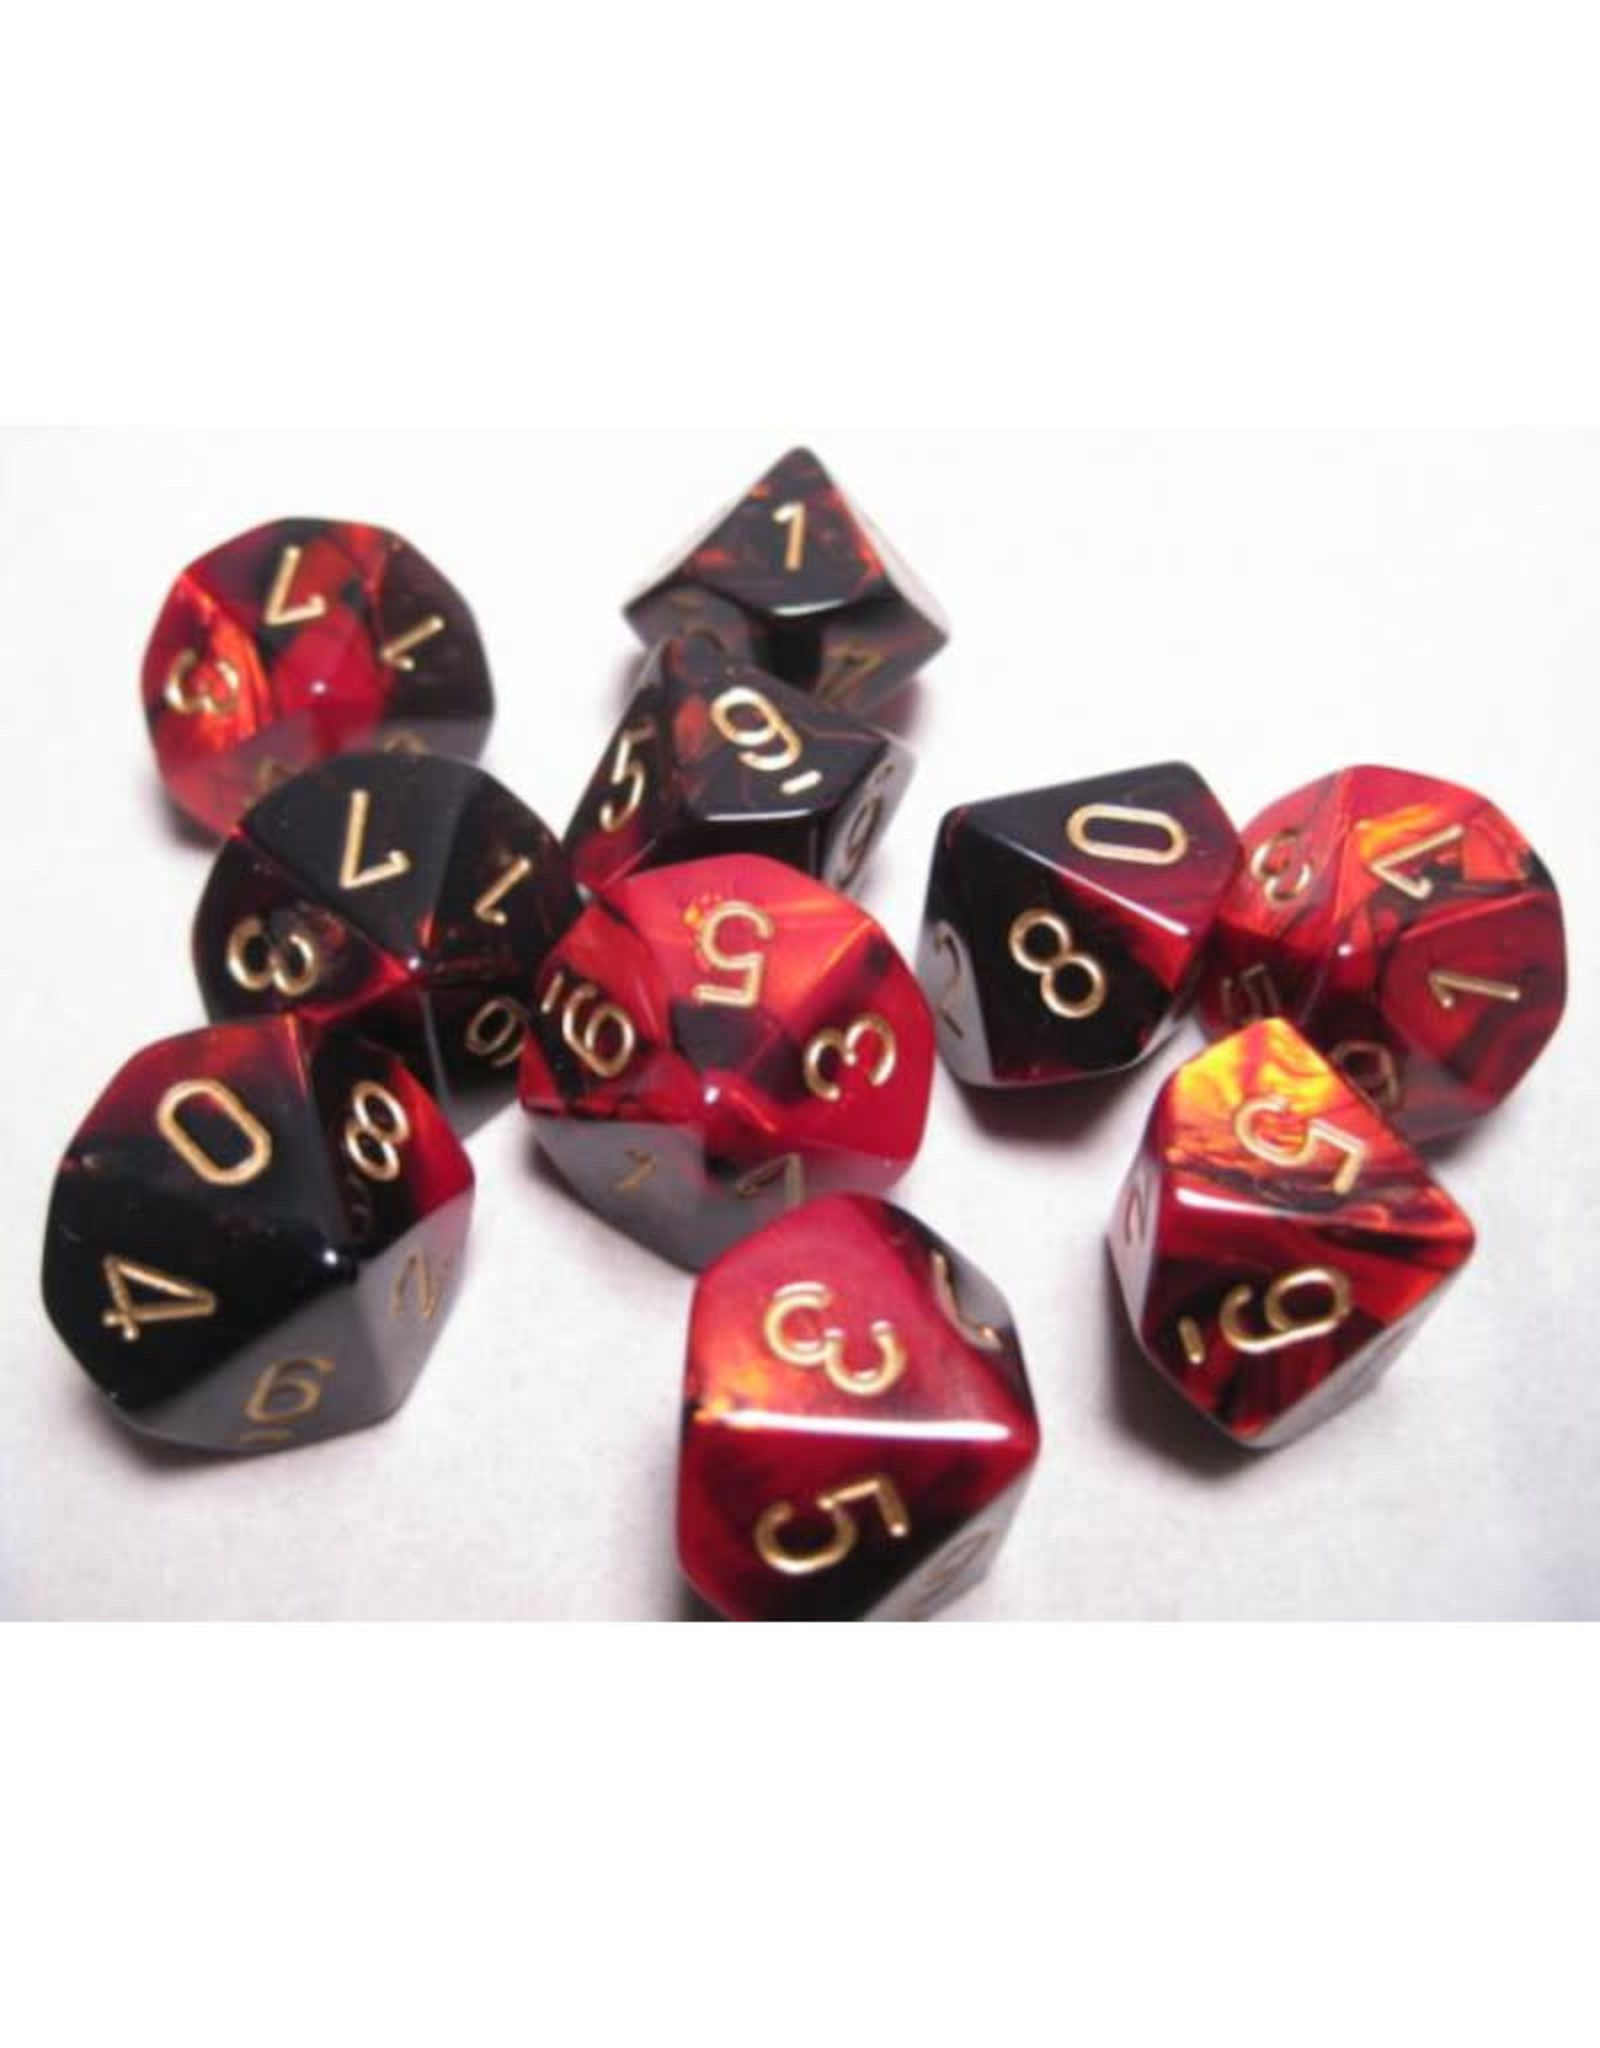 Chessex D10 Dice: Gemini Black and Red (10)